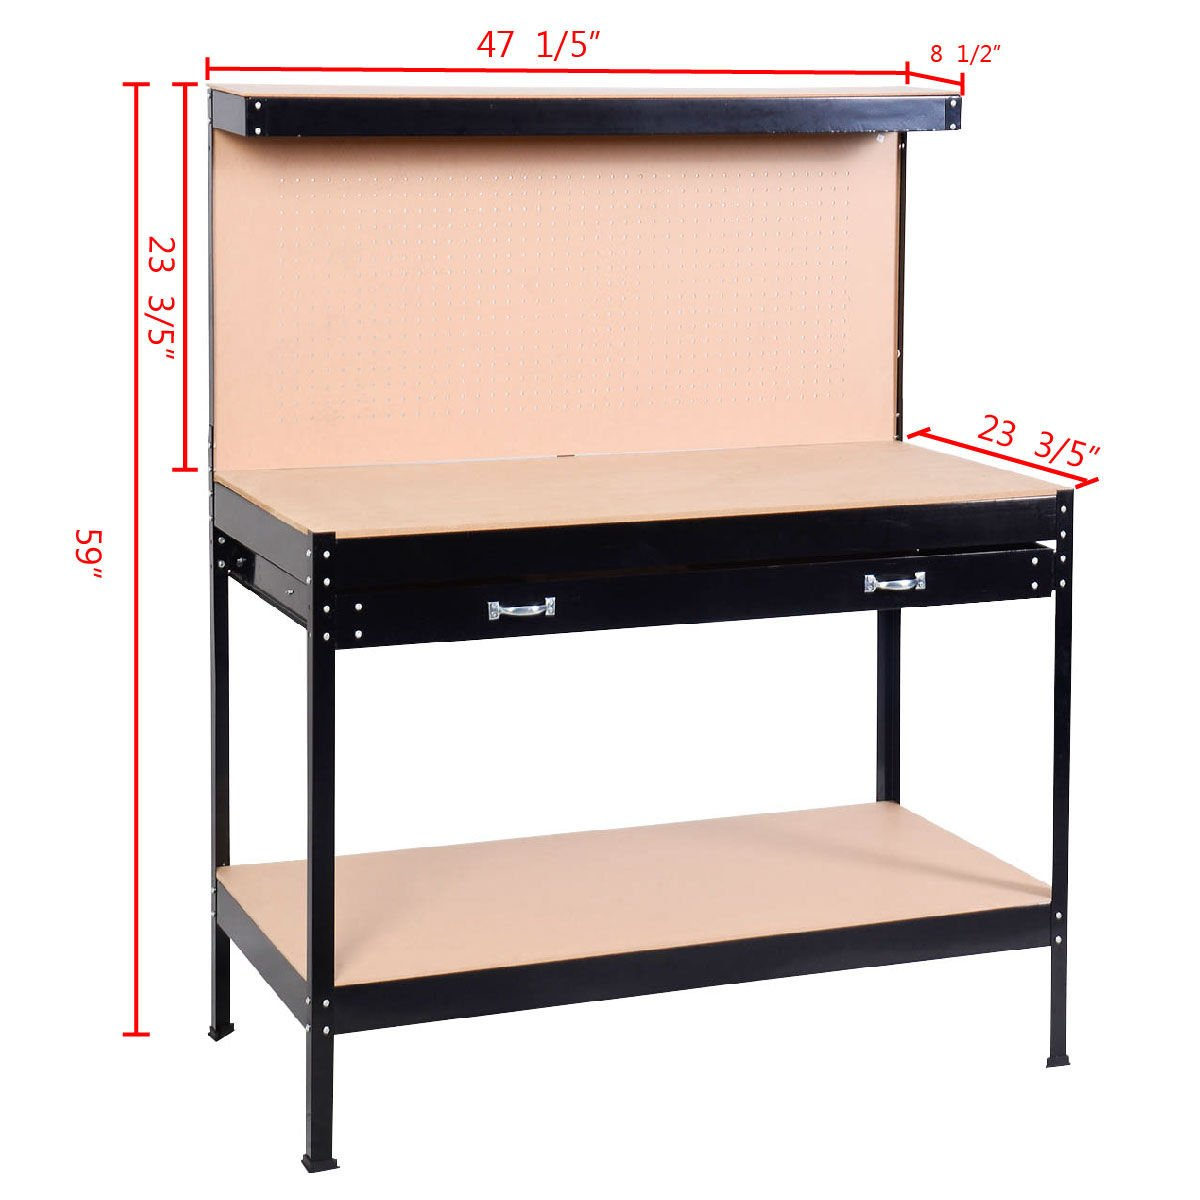 Work Bench Tool Storage Steel Frame Workshop Table W/ Drawer & Peg Board by Allblessings (Image #3)